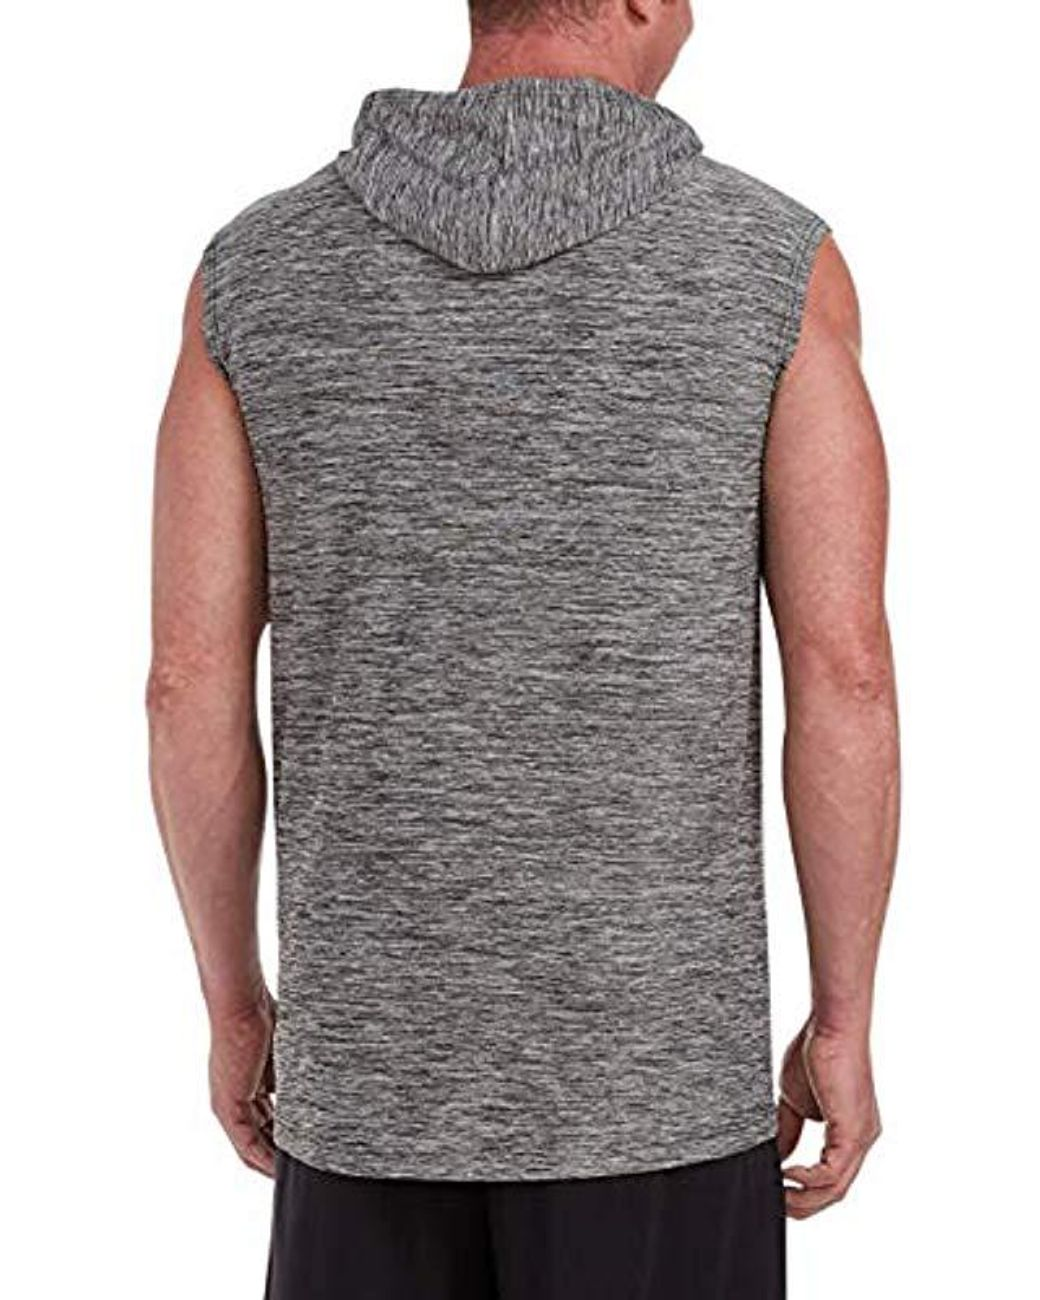 Essentials Mens Big /& Tall Tech Stretch Muscle Shirt fit by DXL